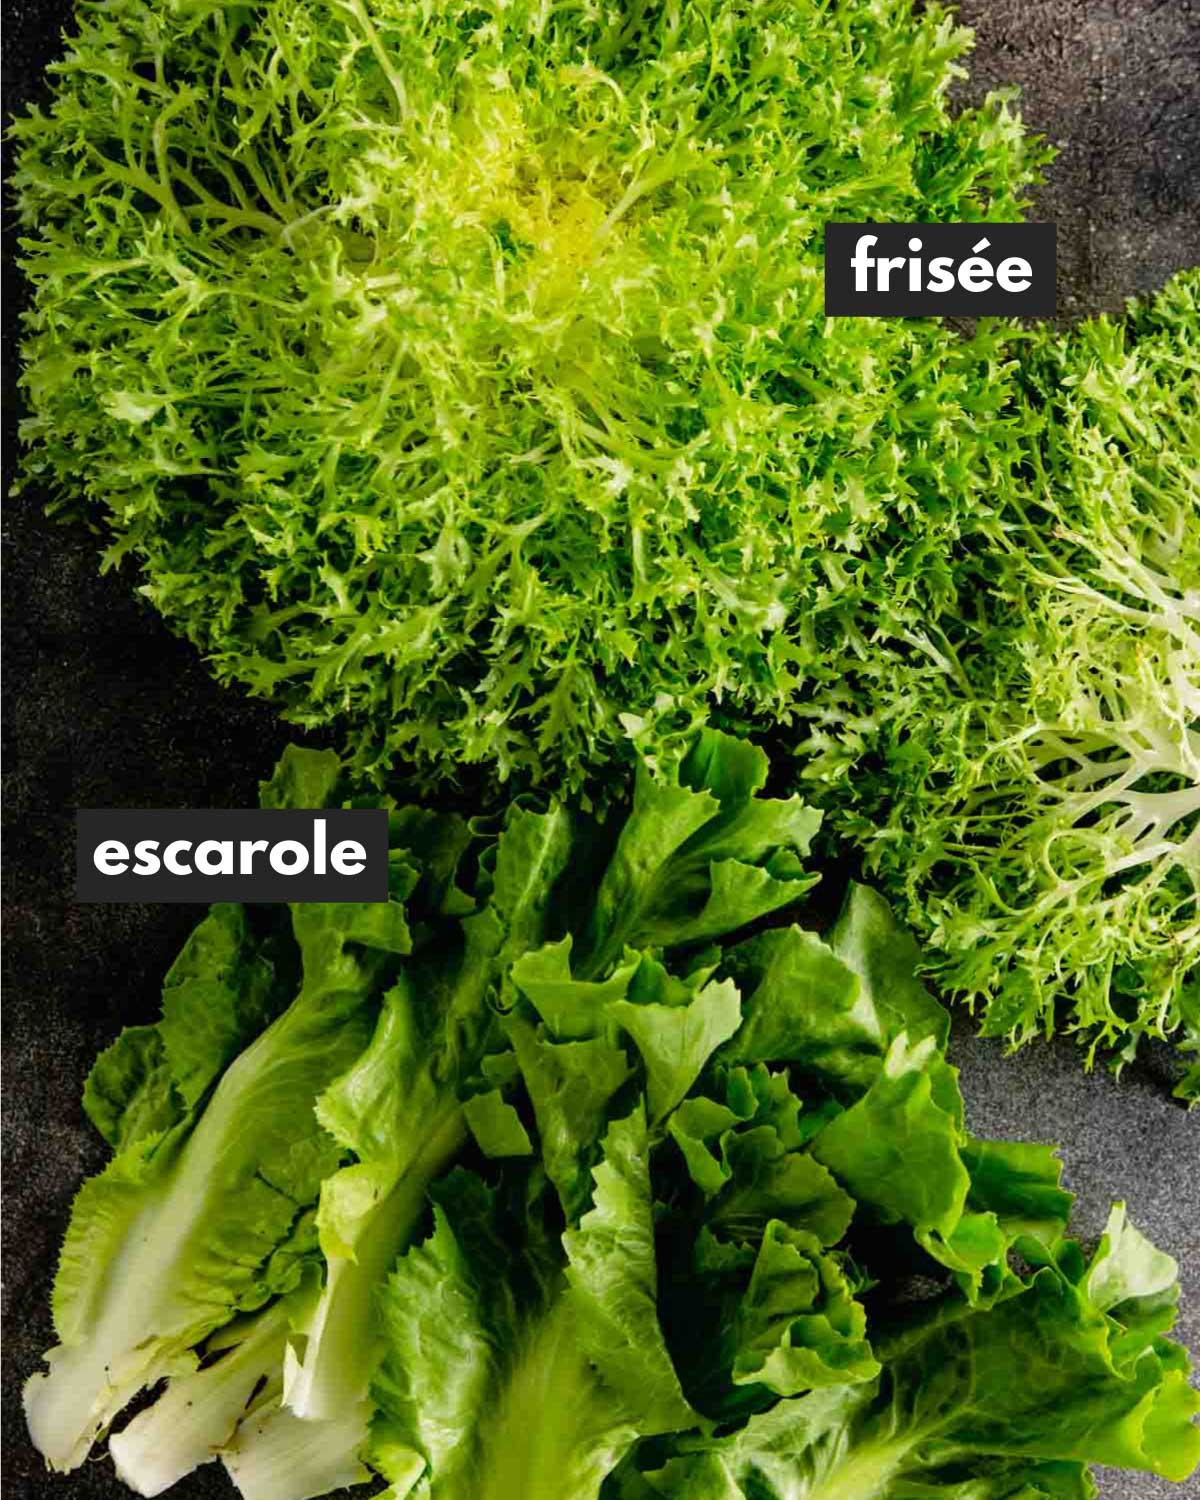 frissee and escarole set on a black table